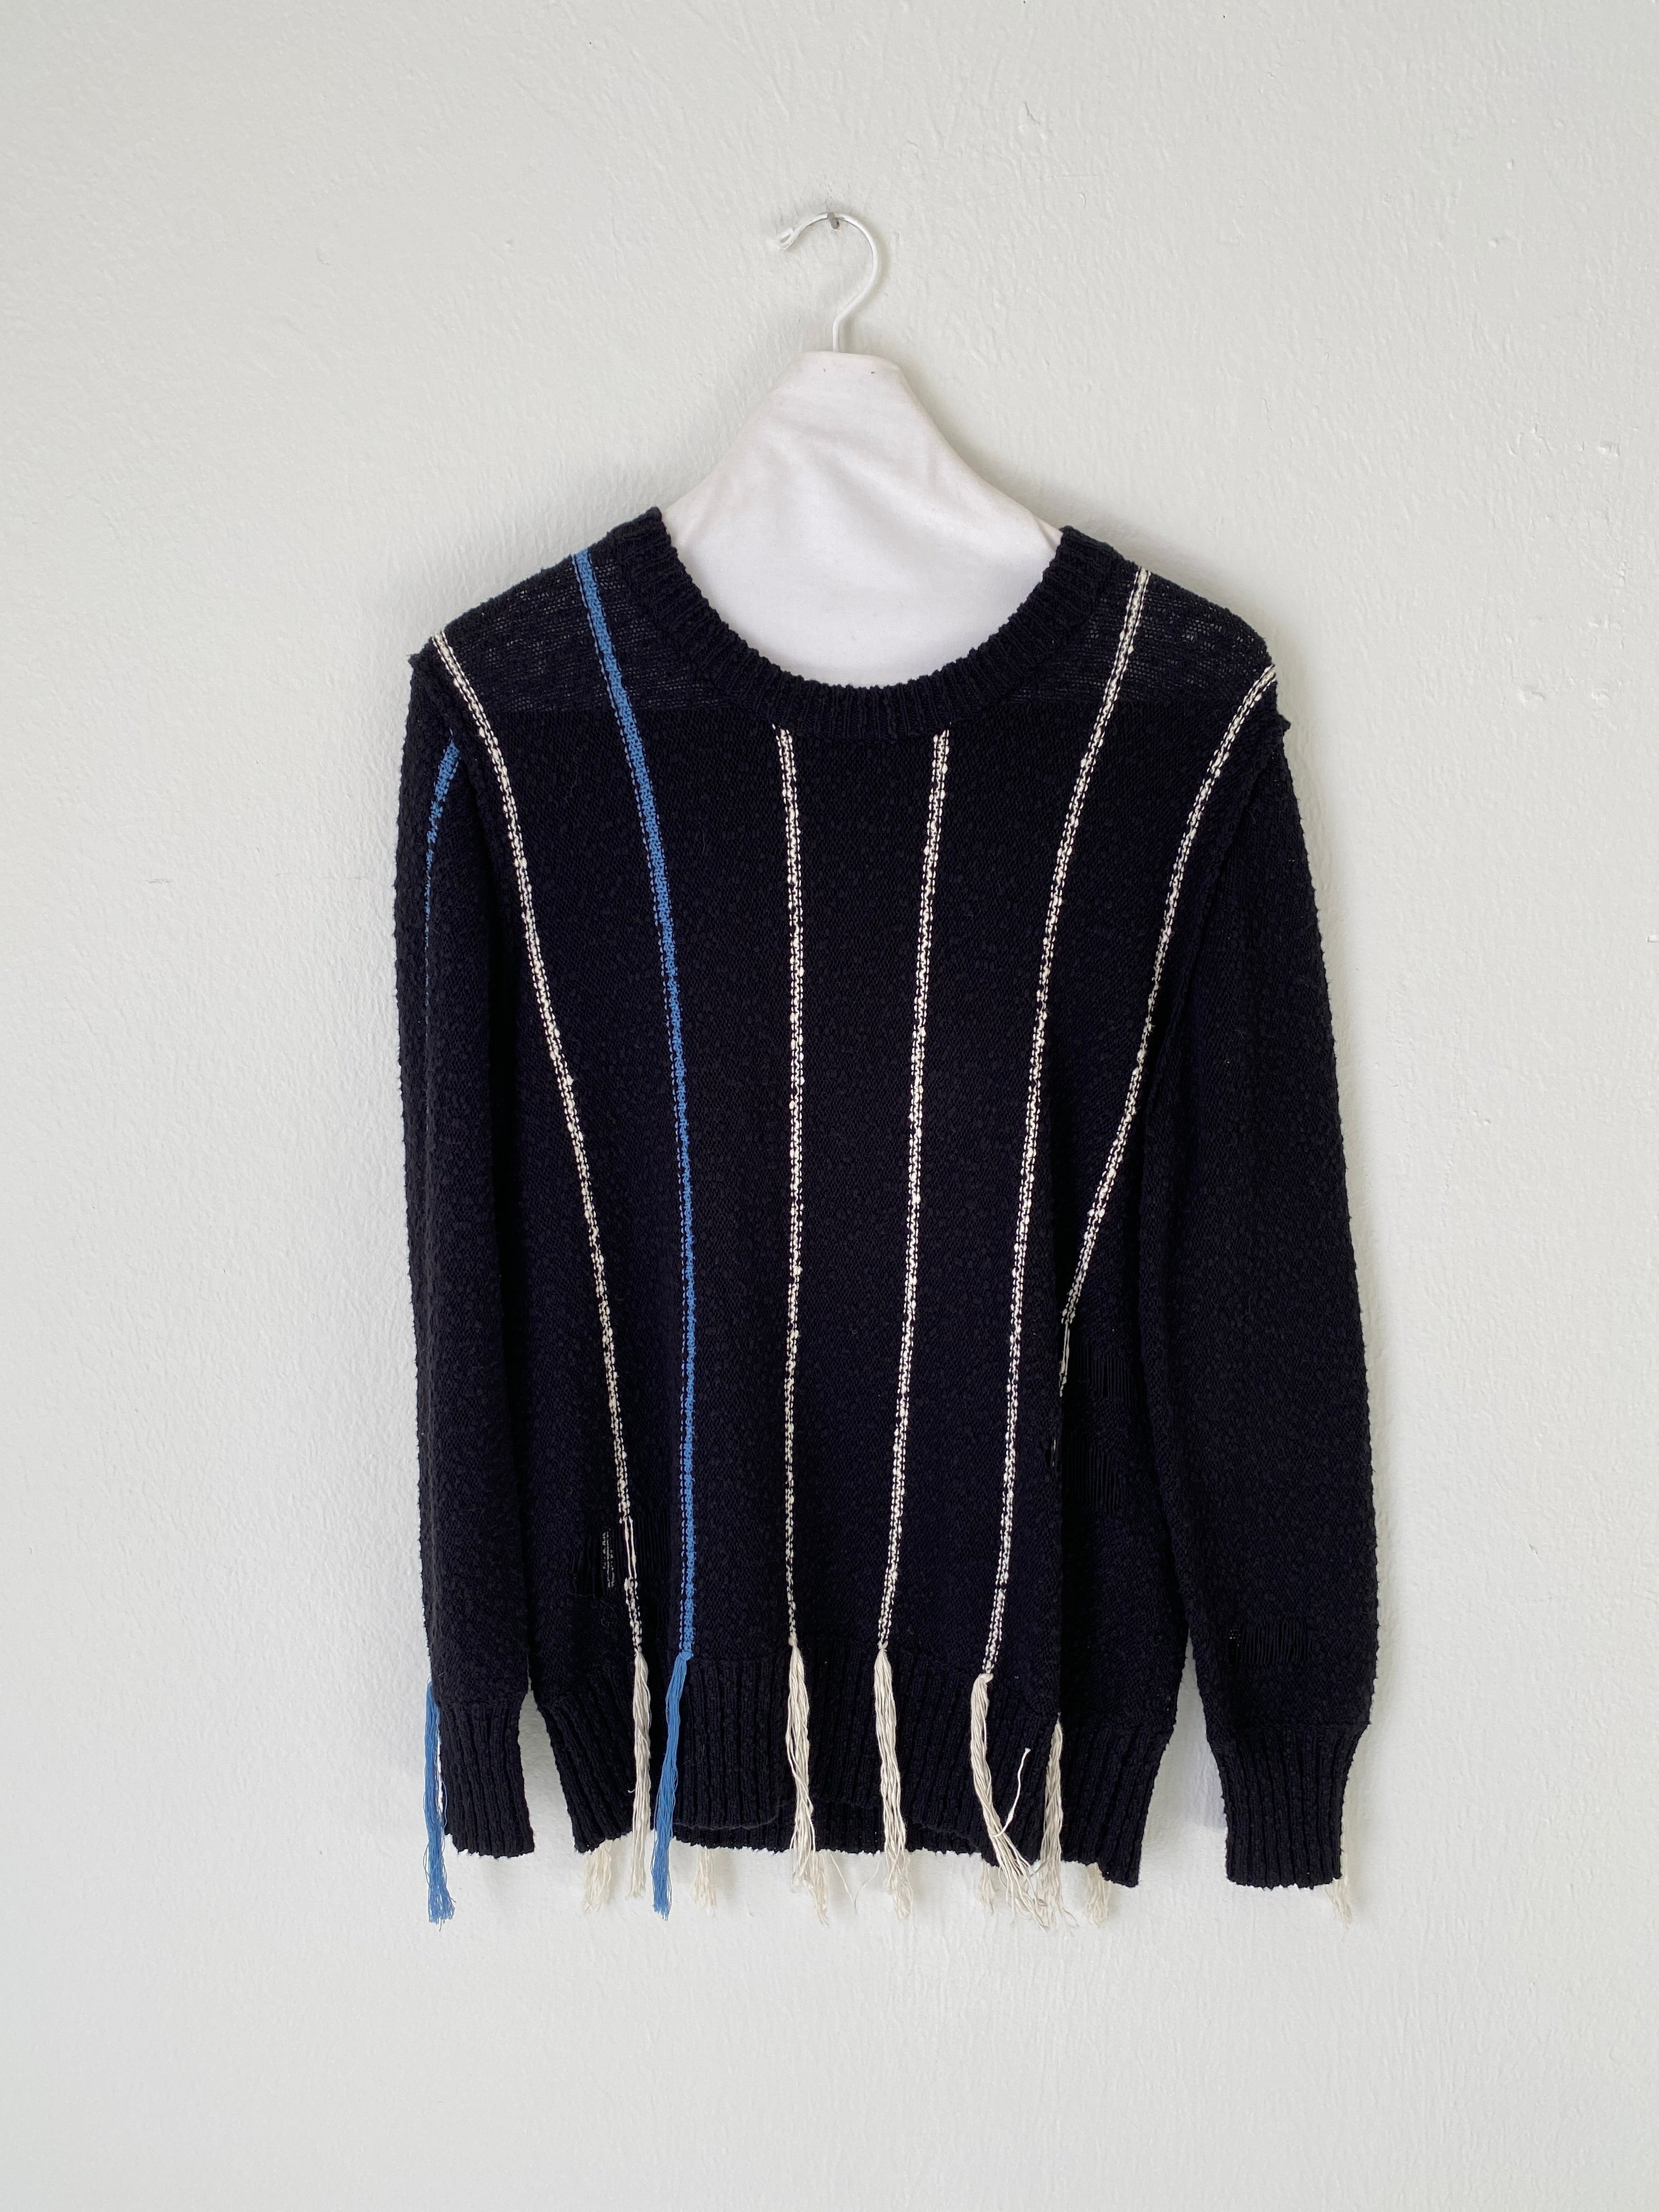 Raquel Allegra Fringe Sweater